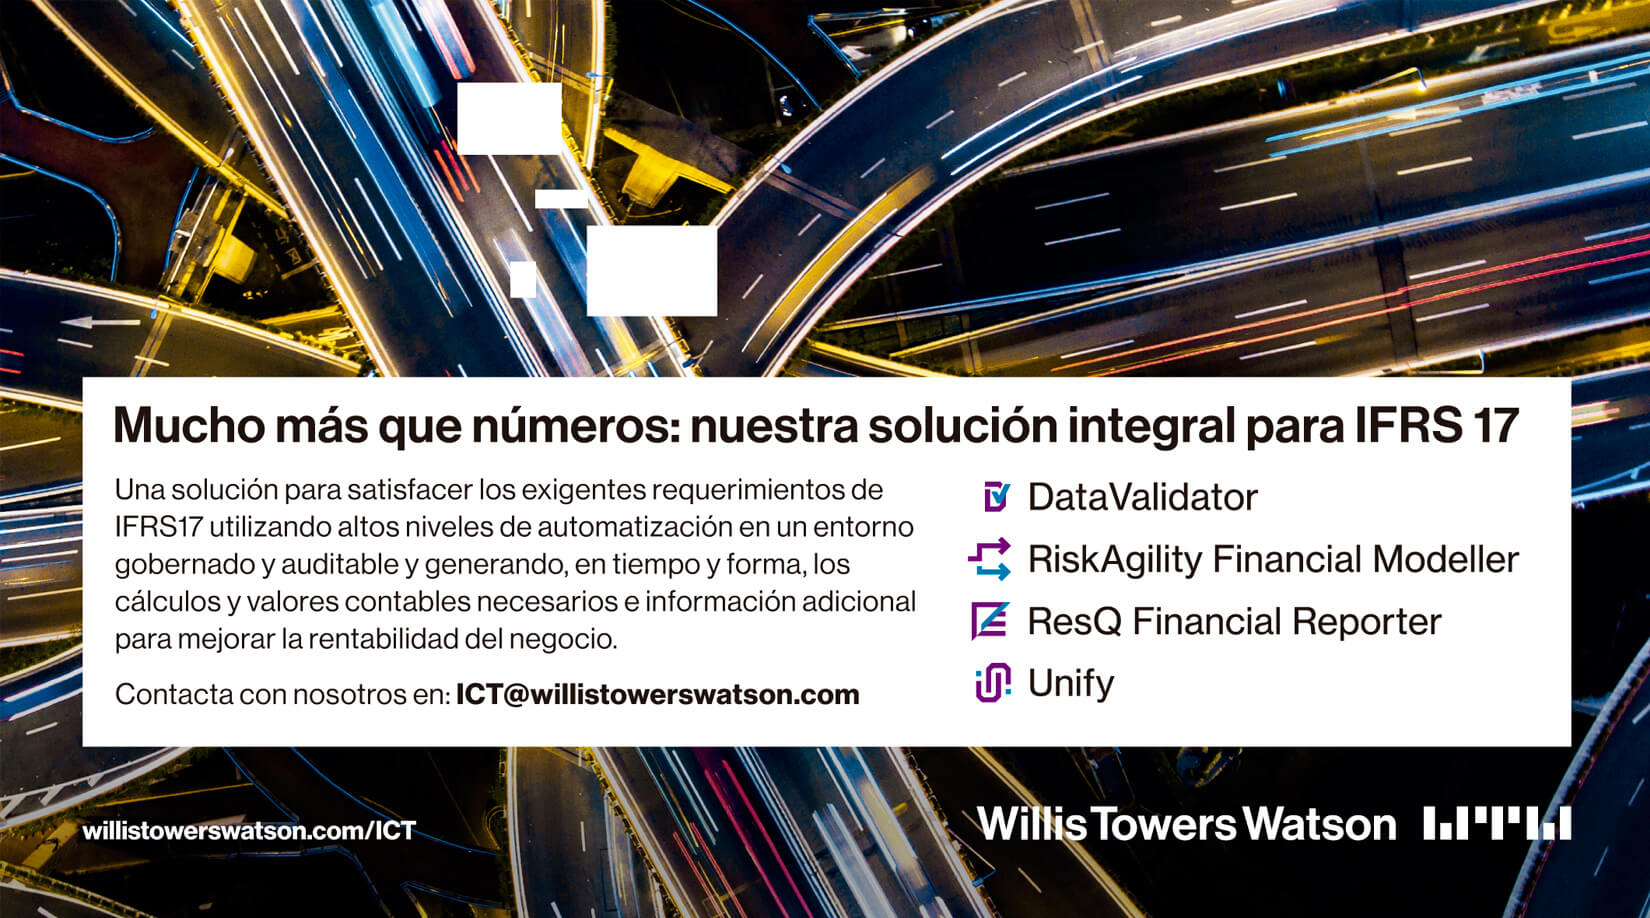 Willis Towers Watson. Unify.